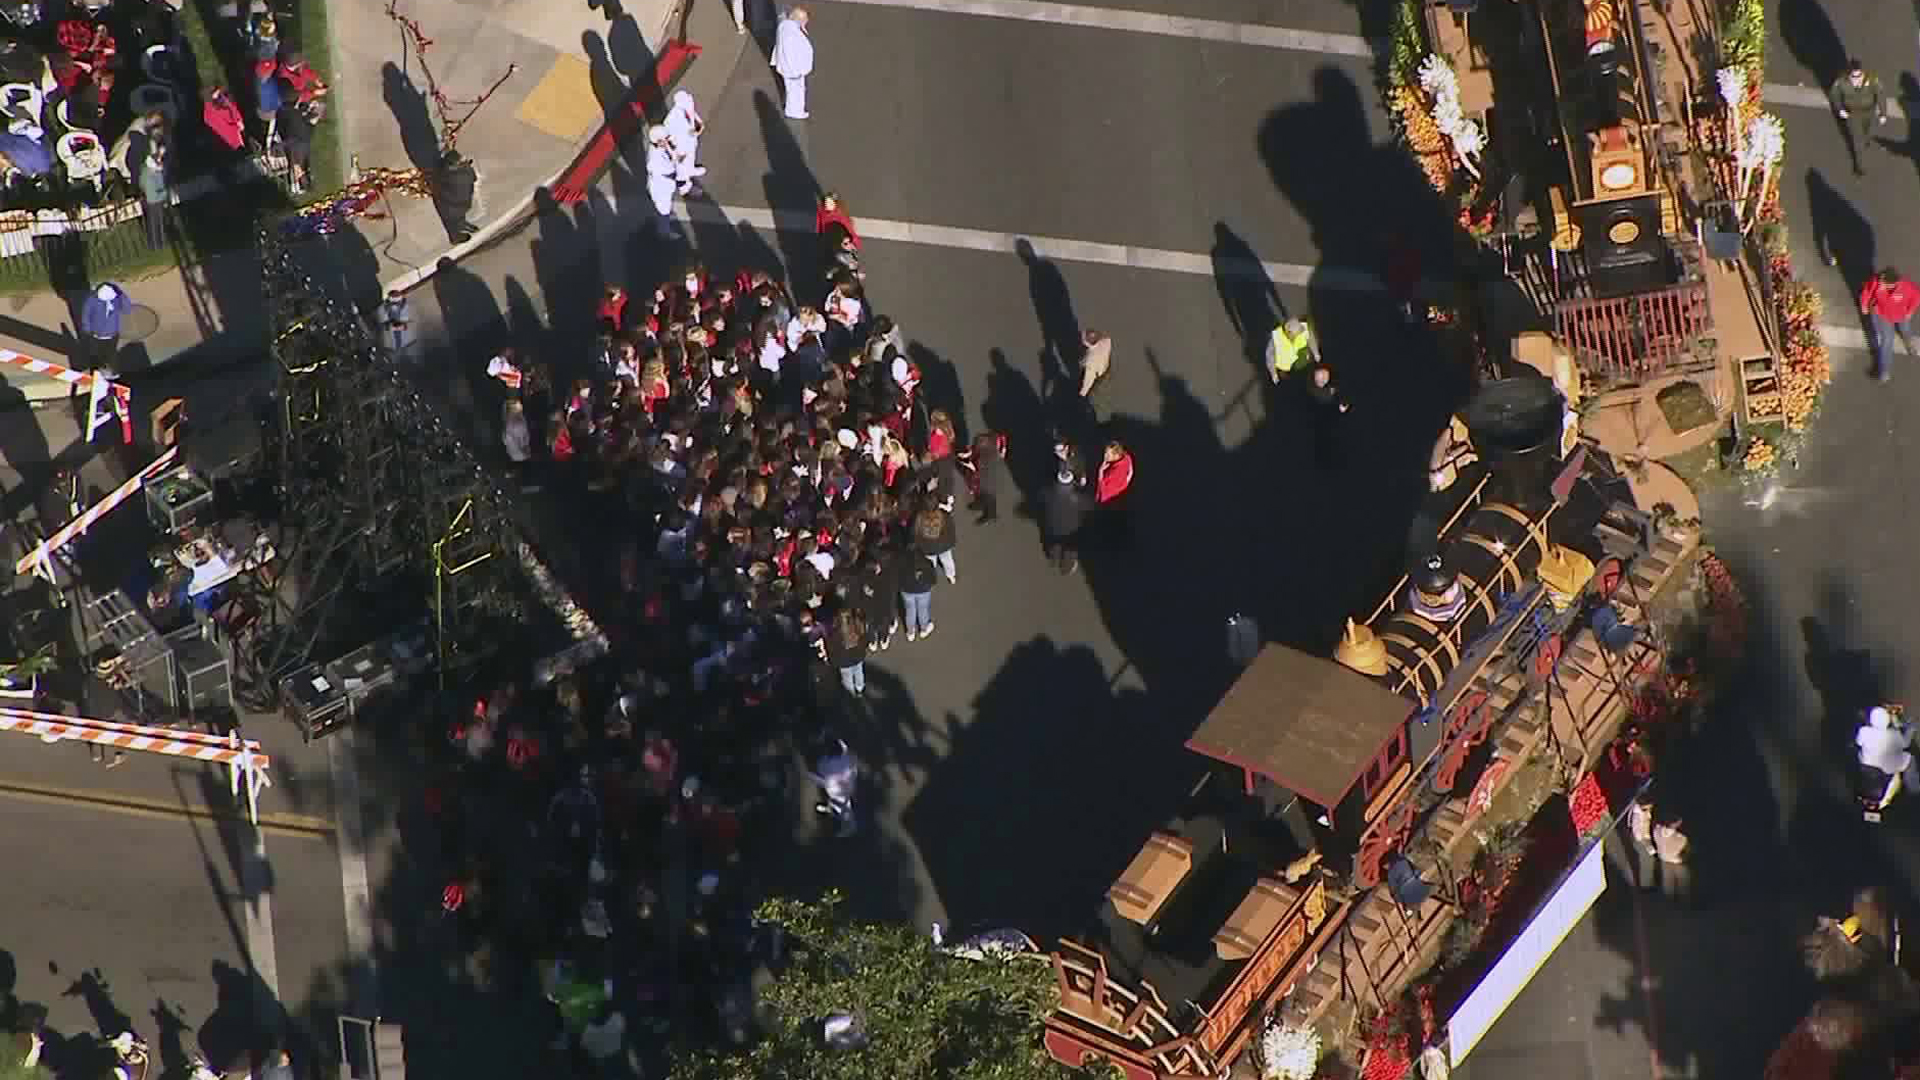 The Chinese American Heritage Foundation float experienced problems during the Jan. 1, 2019, Rose Parade in Pasadena. (Credit: KTLA)